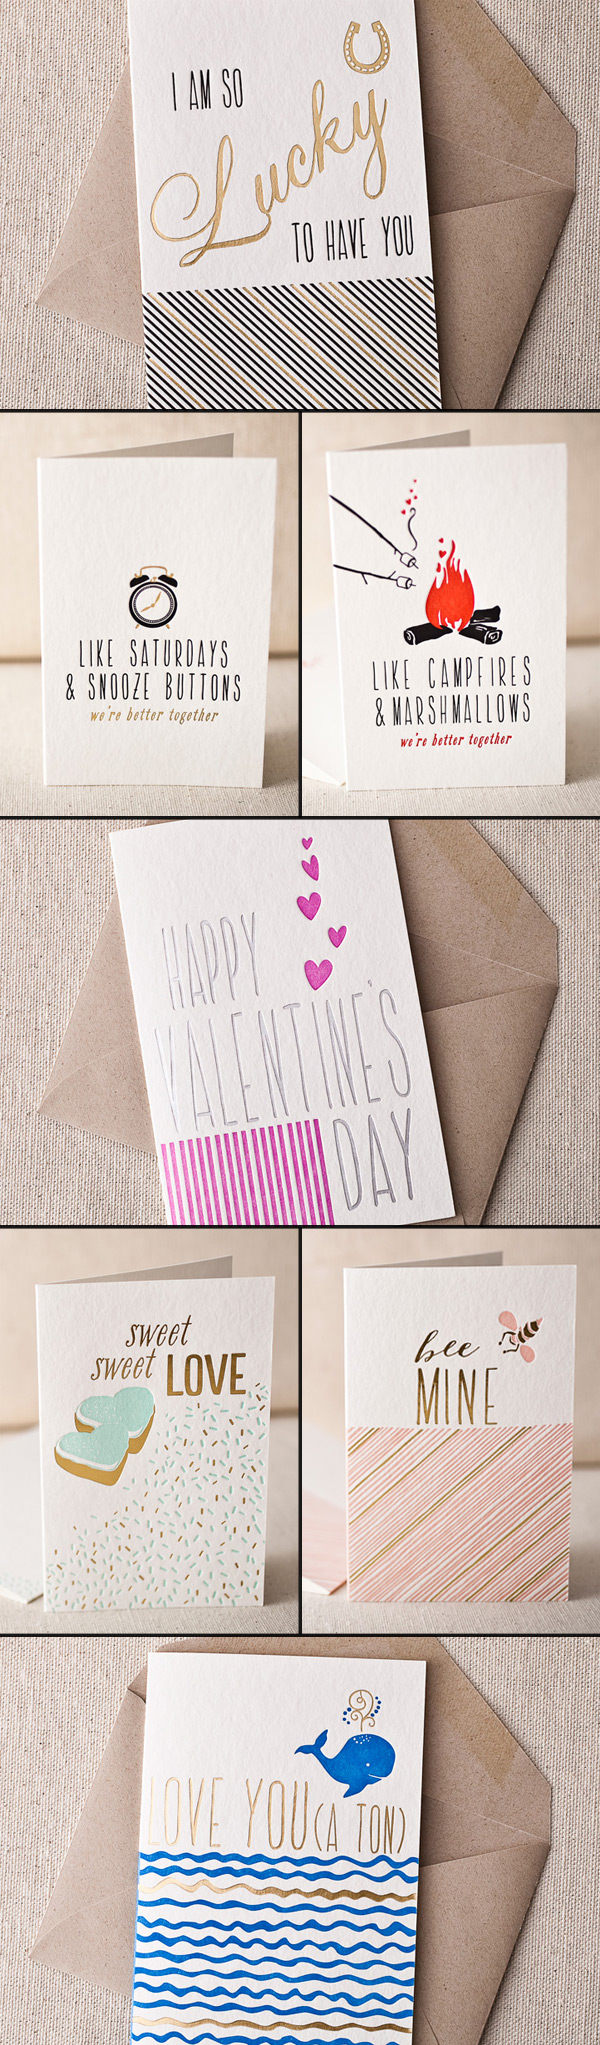 These love cards from Smock are quirky and sweet for Valentine's Day